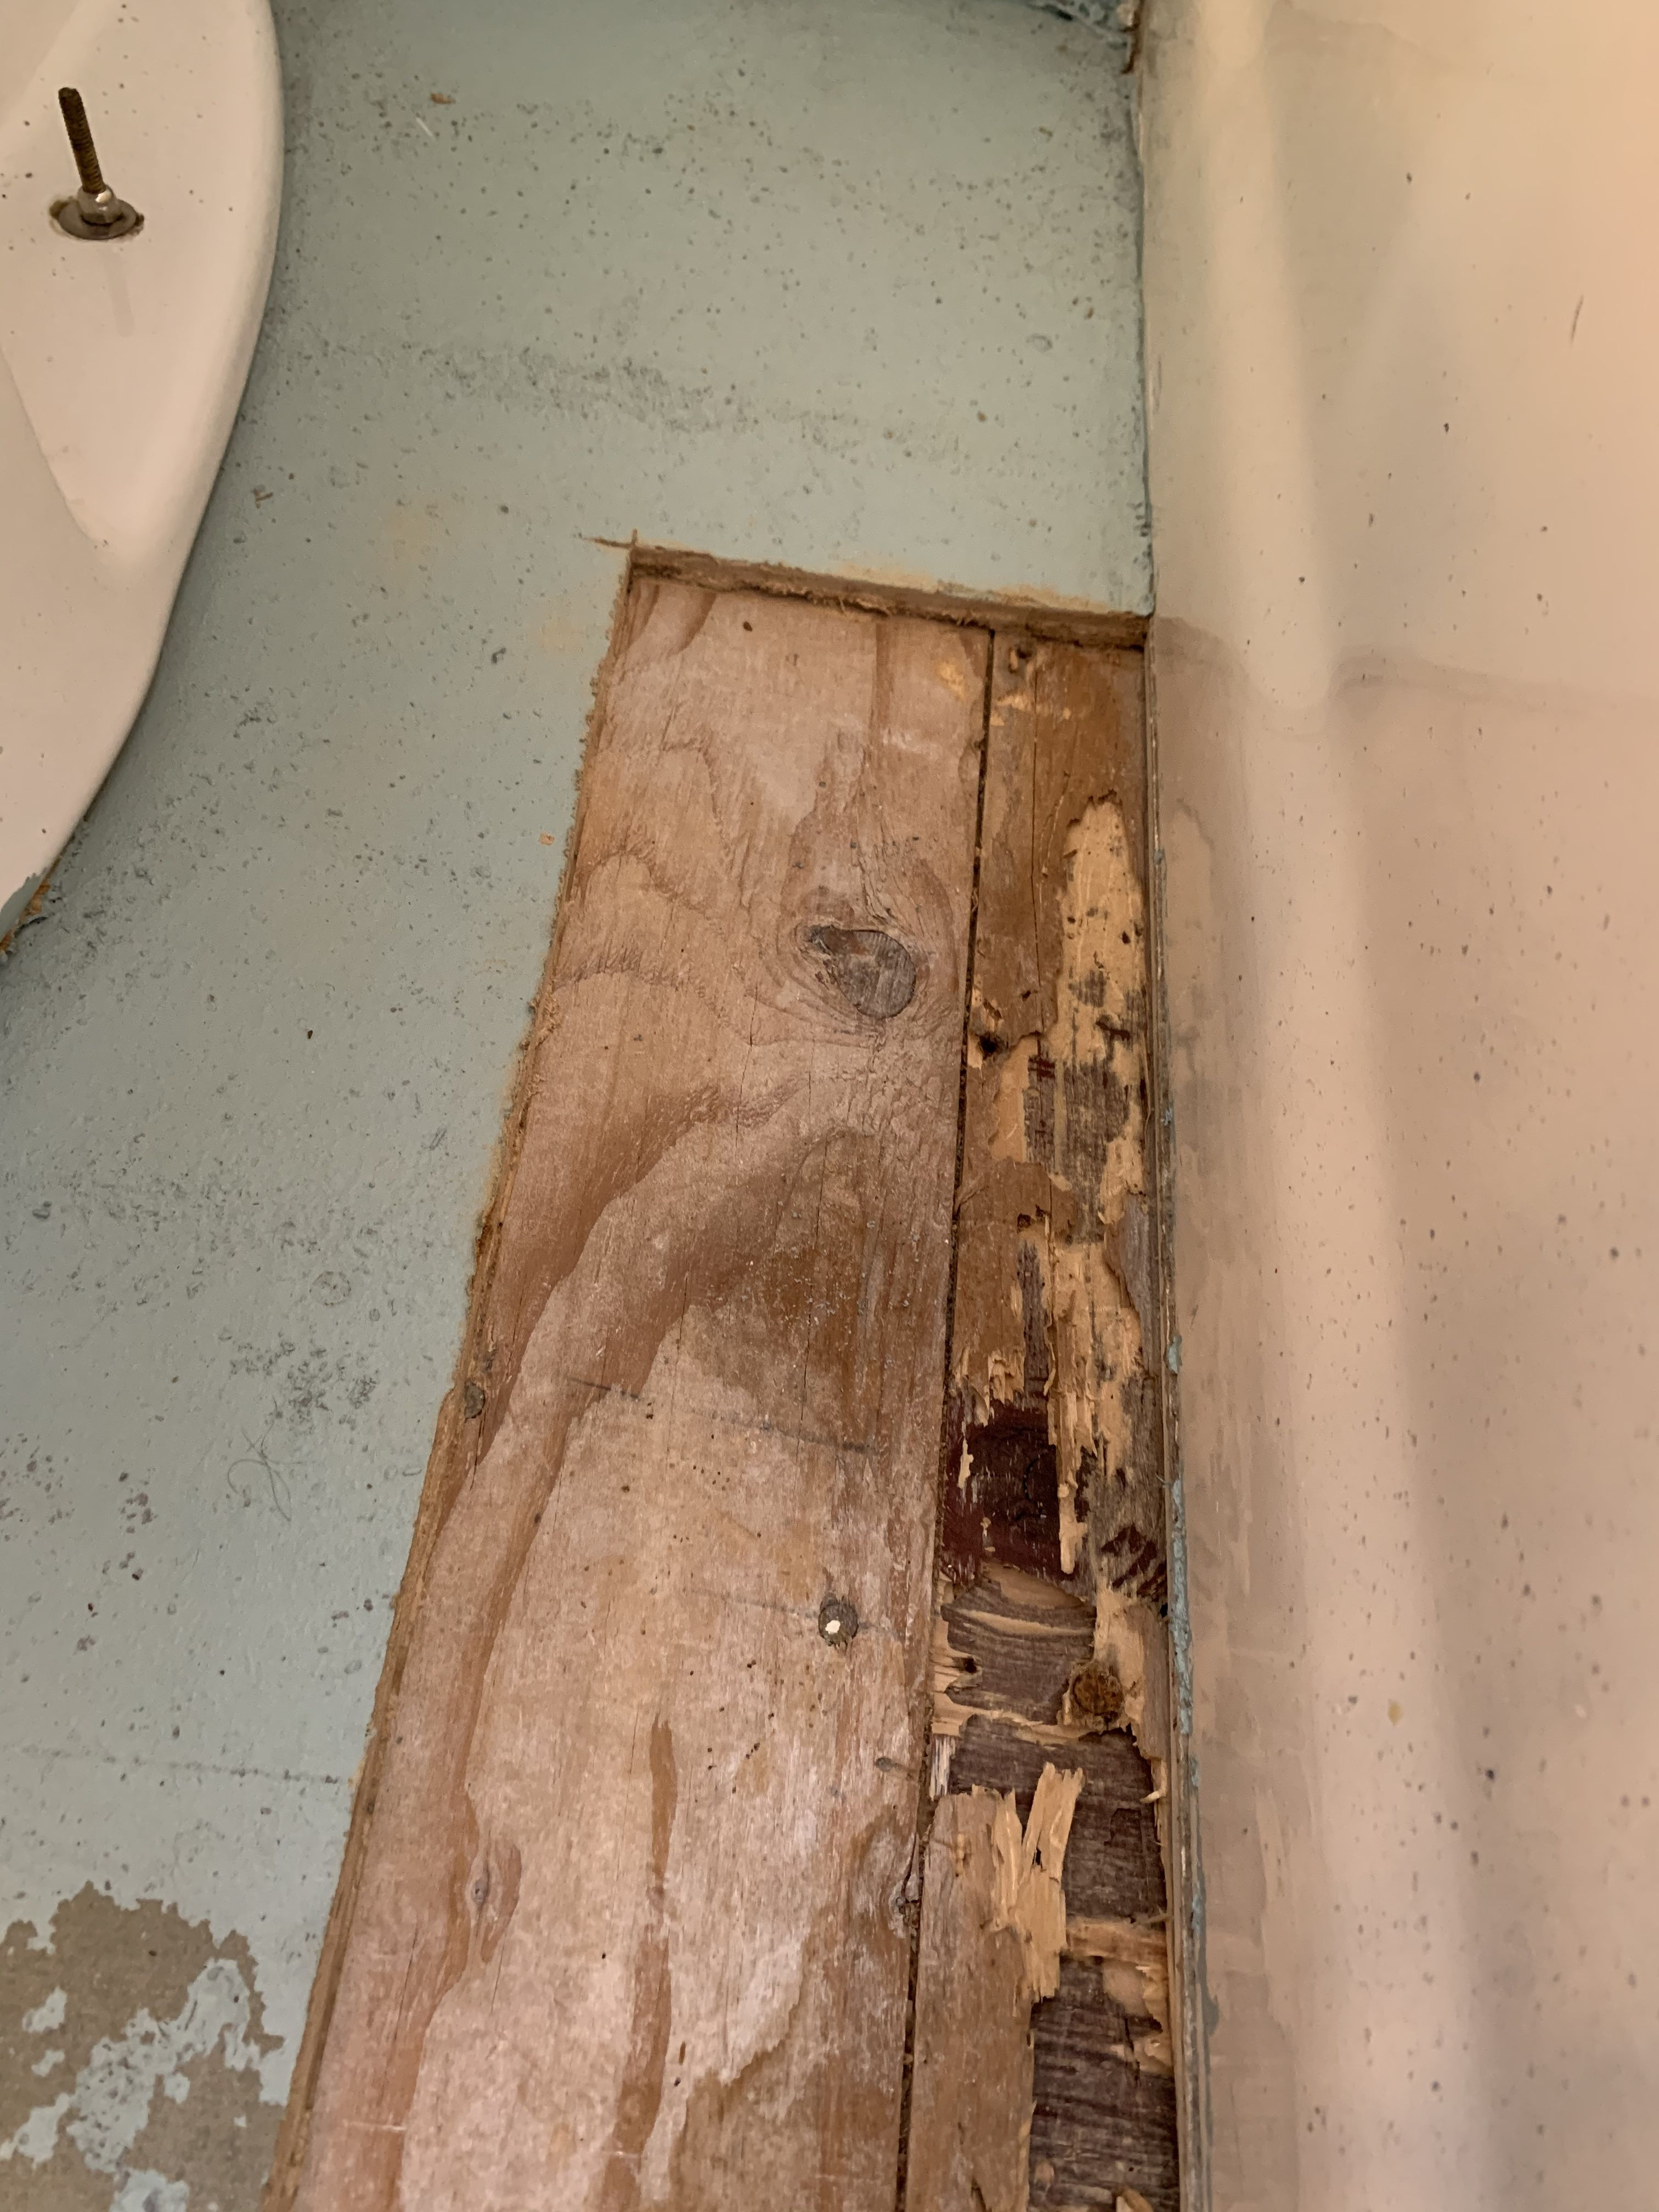 Bathroom Remodels Uncover Dry Rot And Termite Damage It Happens Construction Life Boyledesign831 Interiordesig In 2020 Termite Damage Bathrooms Remodel Remodel